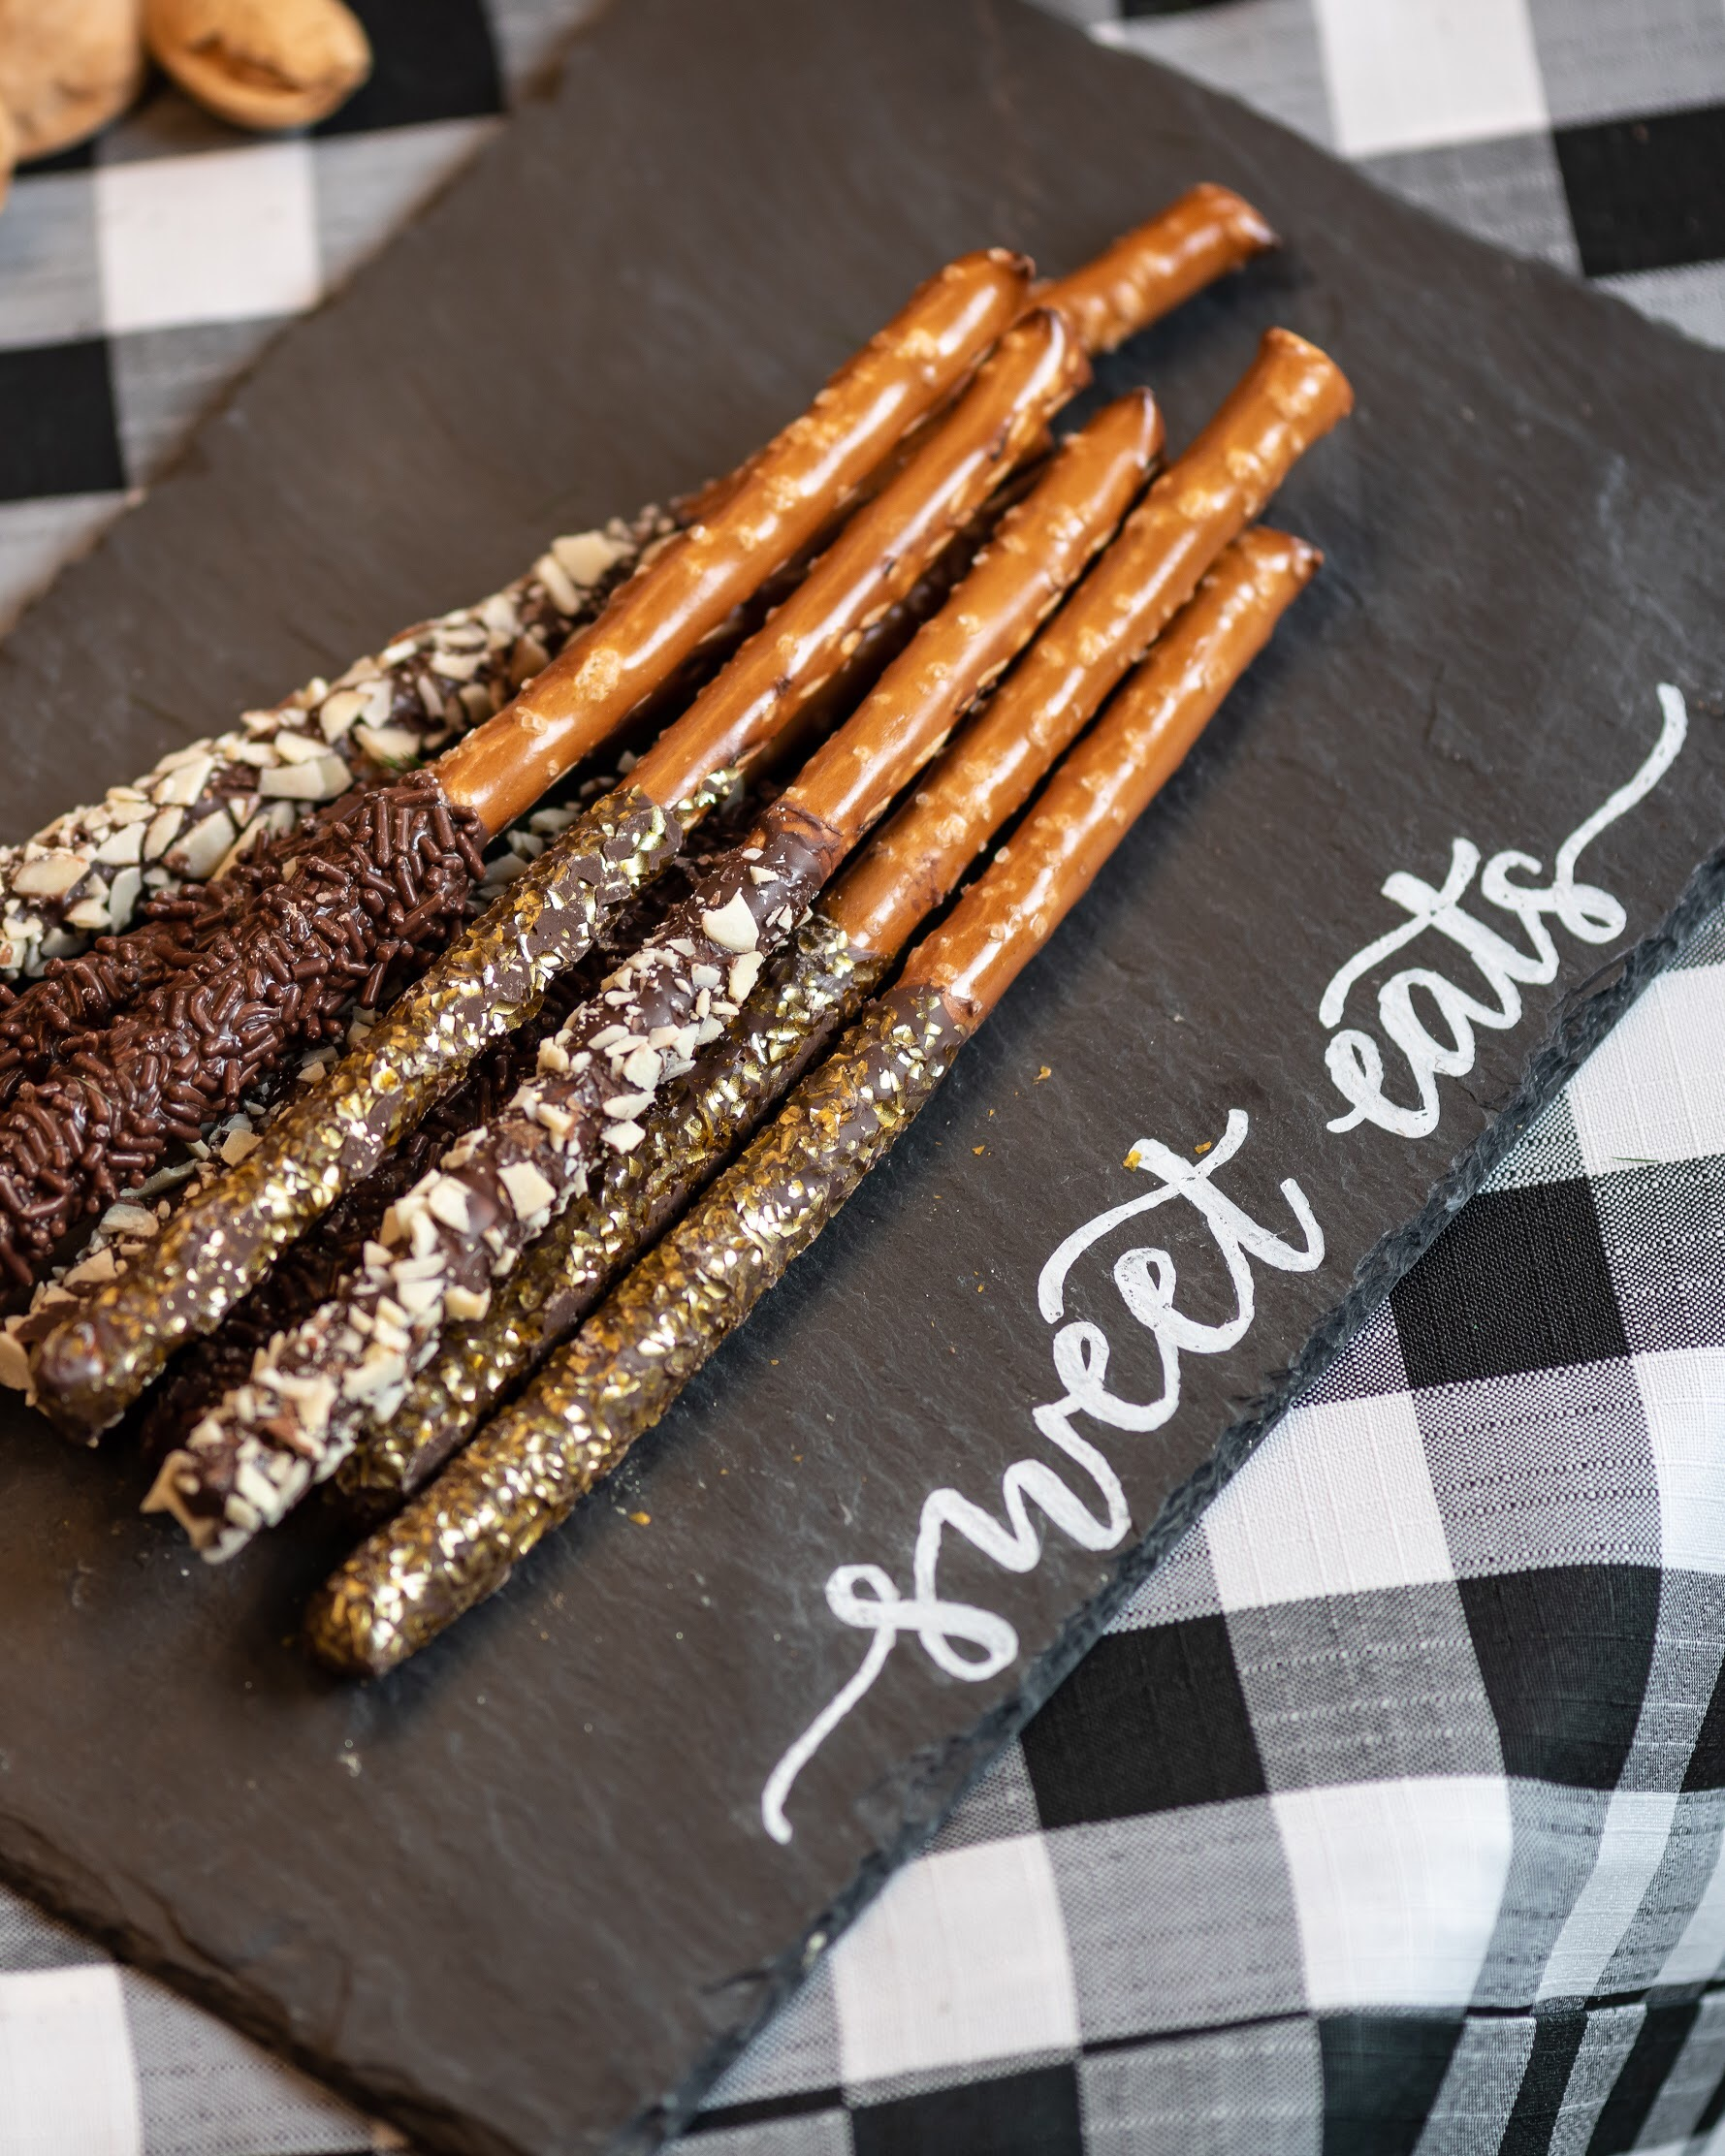 Chocolate covered pretzel rods are a welcome treat at any party! Love the use of the slate with hand lettered label